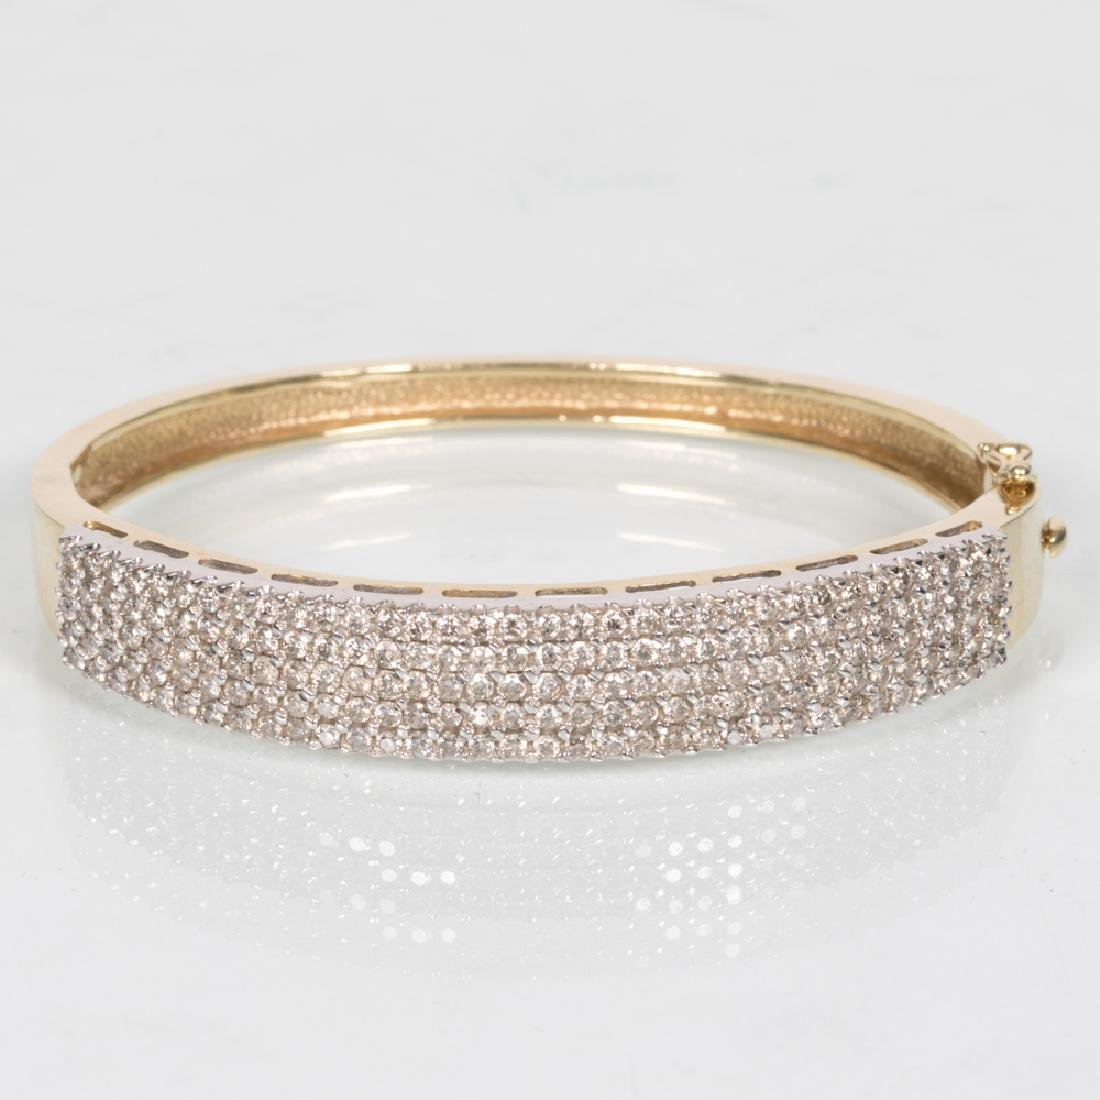 An 18kt. Yellow and White Gold, Diamond Cuff Bracelet,